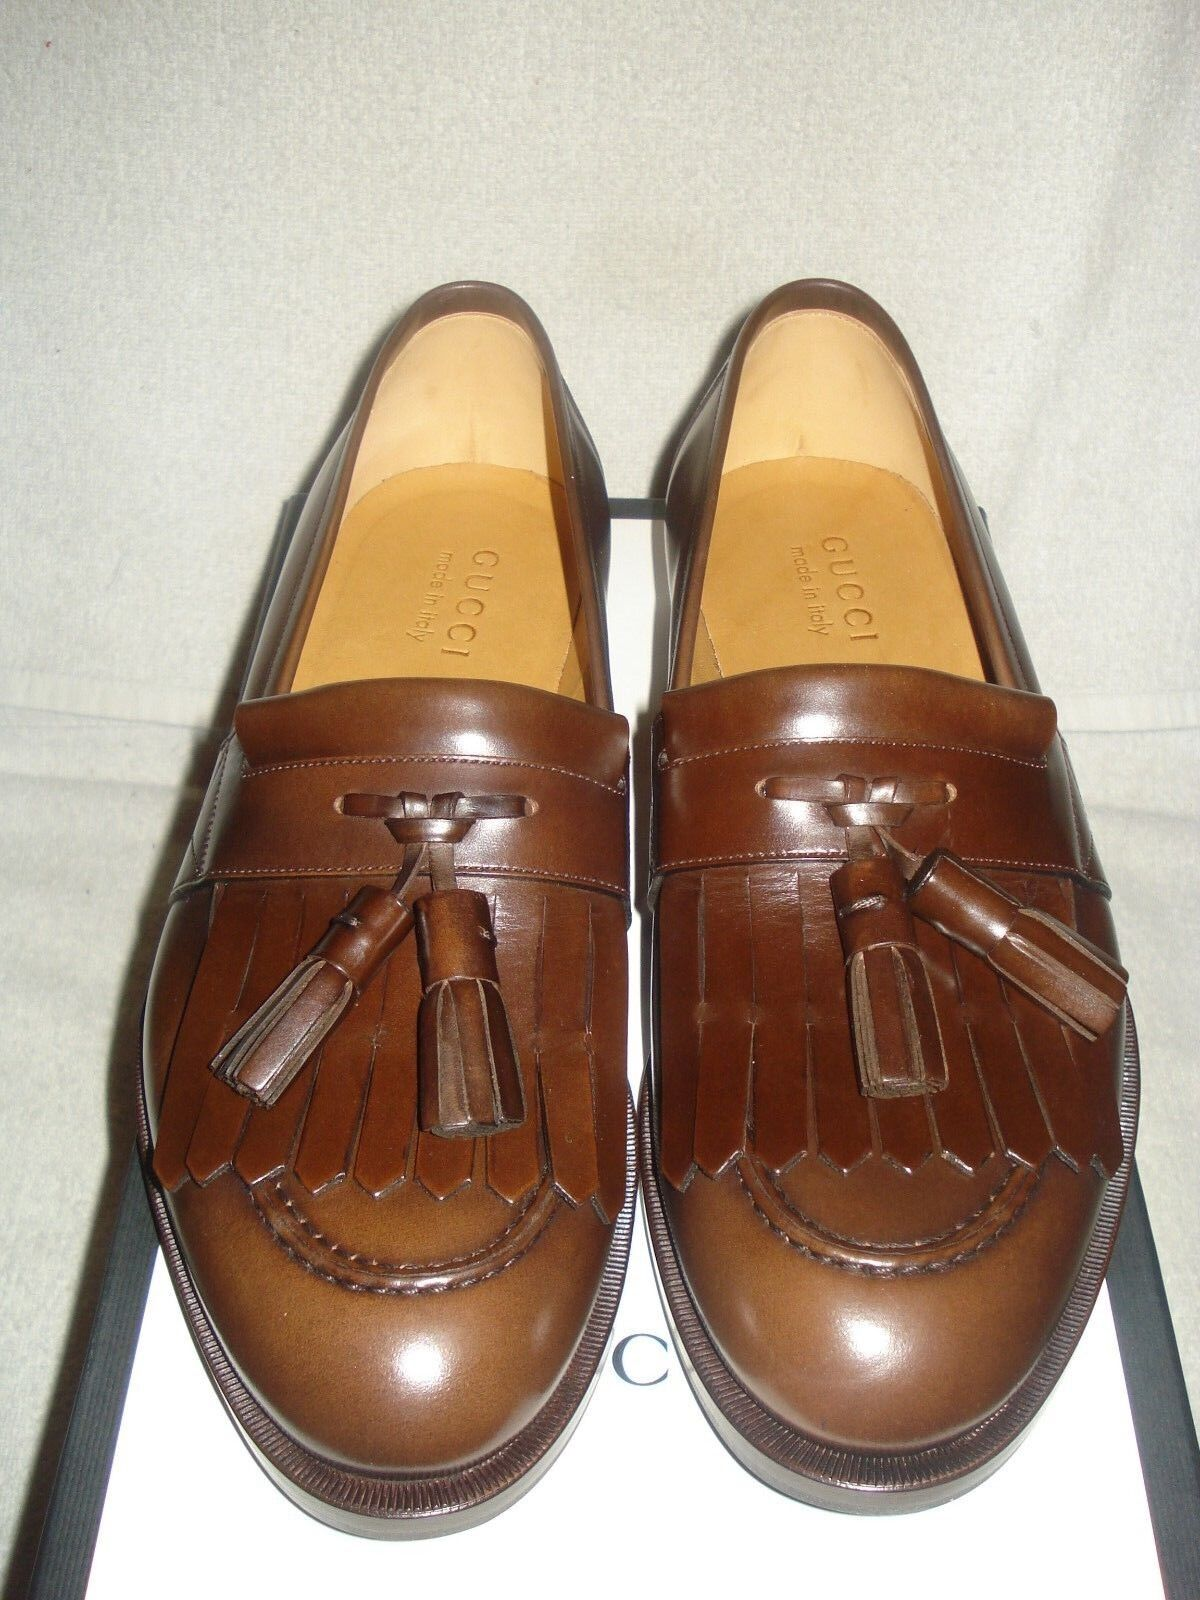 43e146540 100 Auth Men Gucci Queercore Brown Leather Tassel Drivers/loafers UK 8/us 9  for sale online | eBay